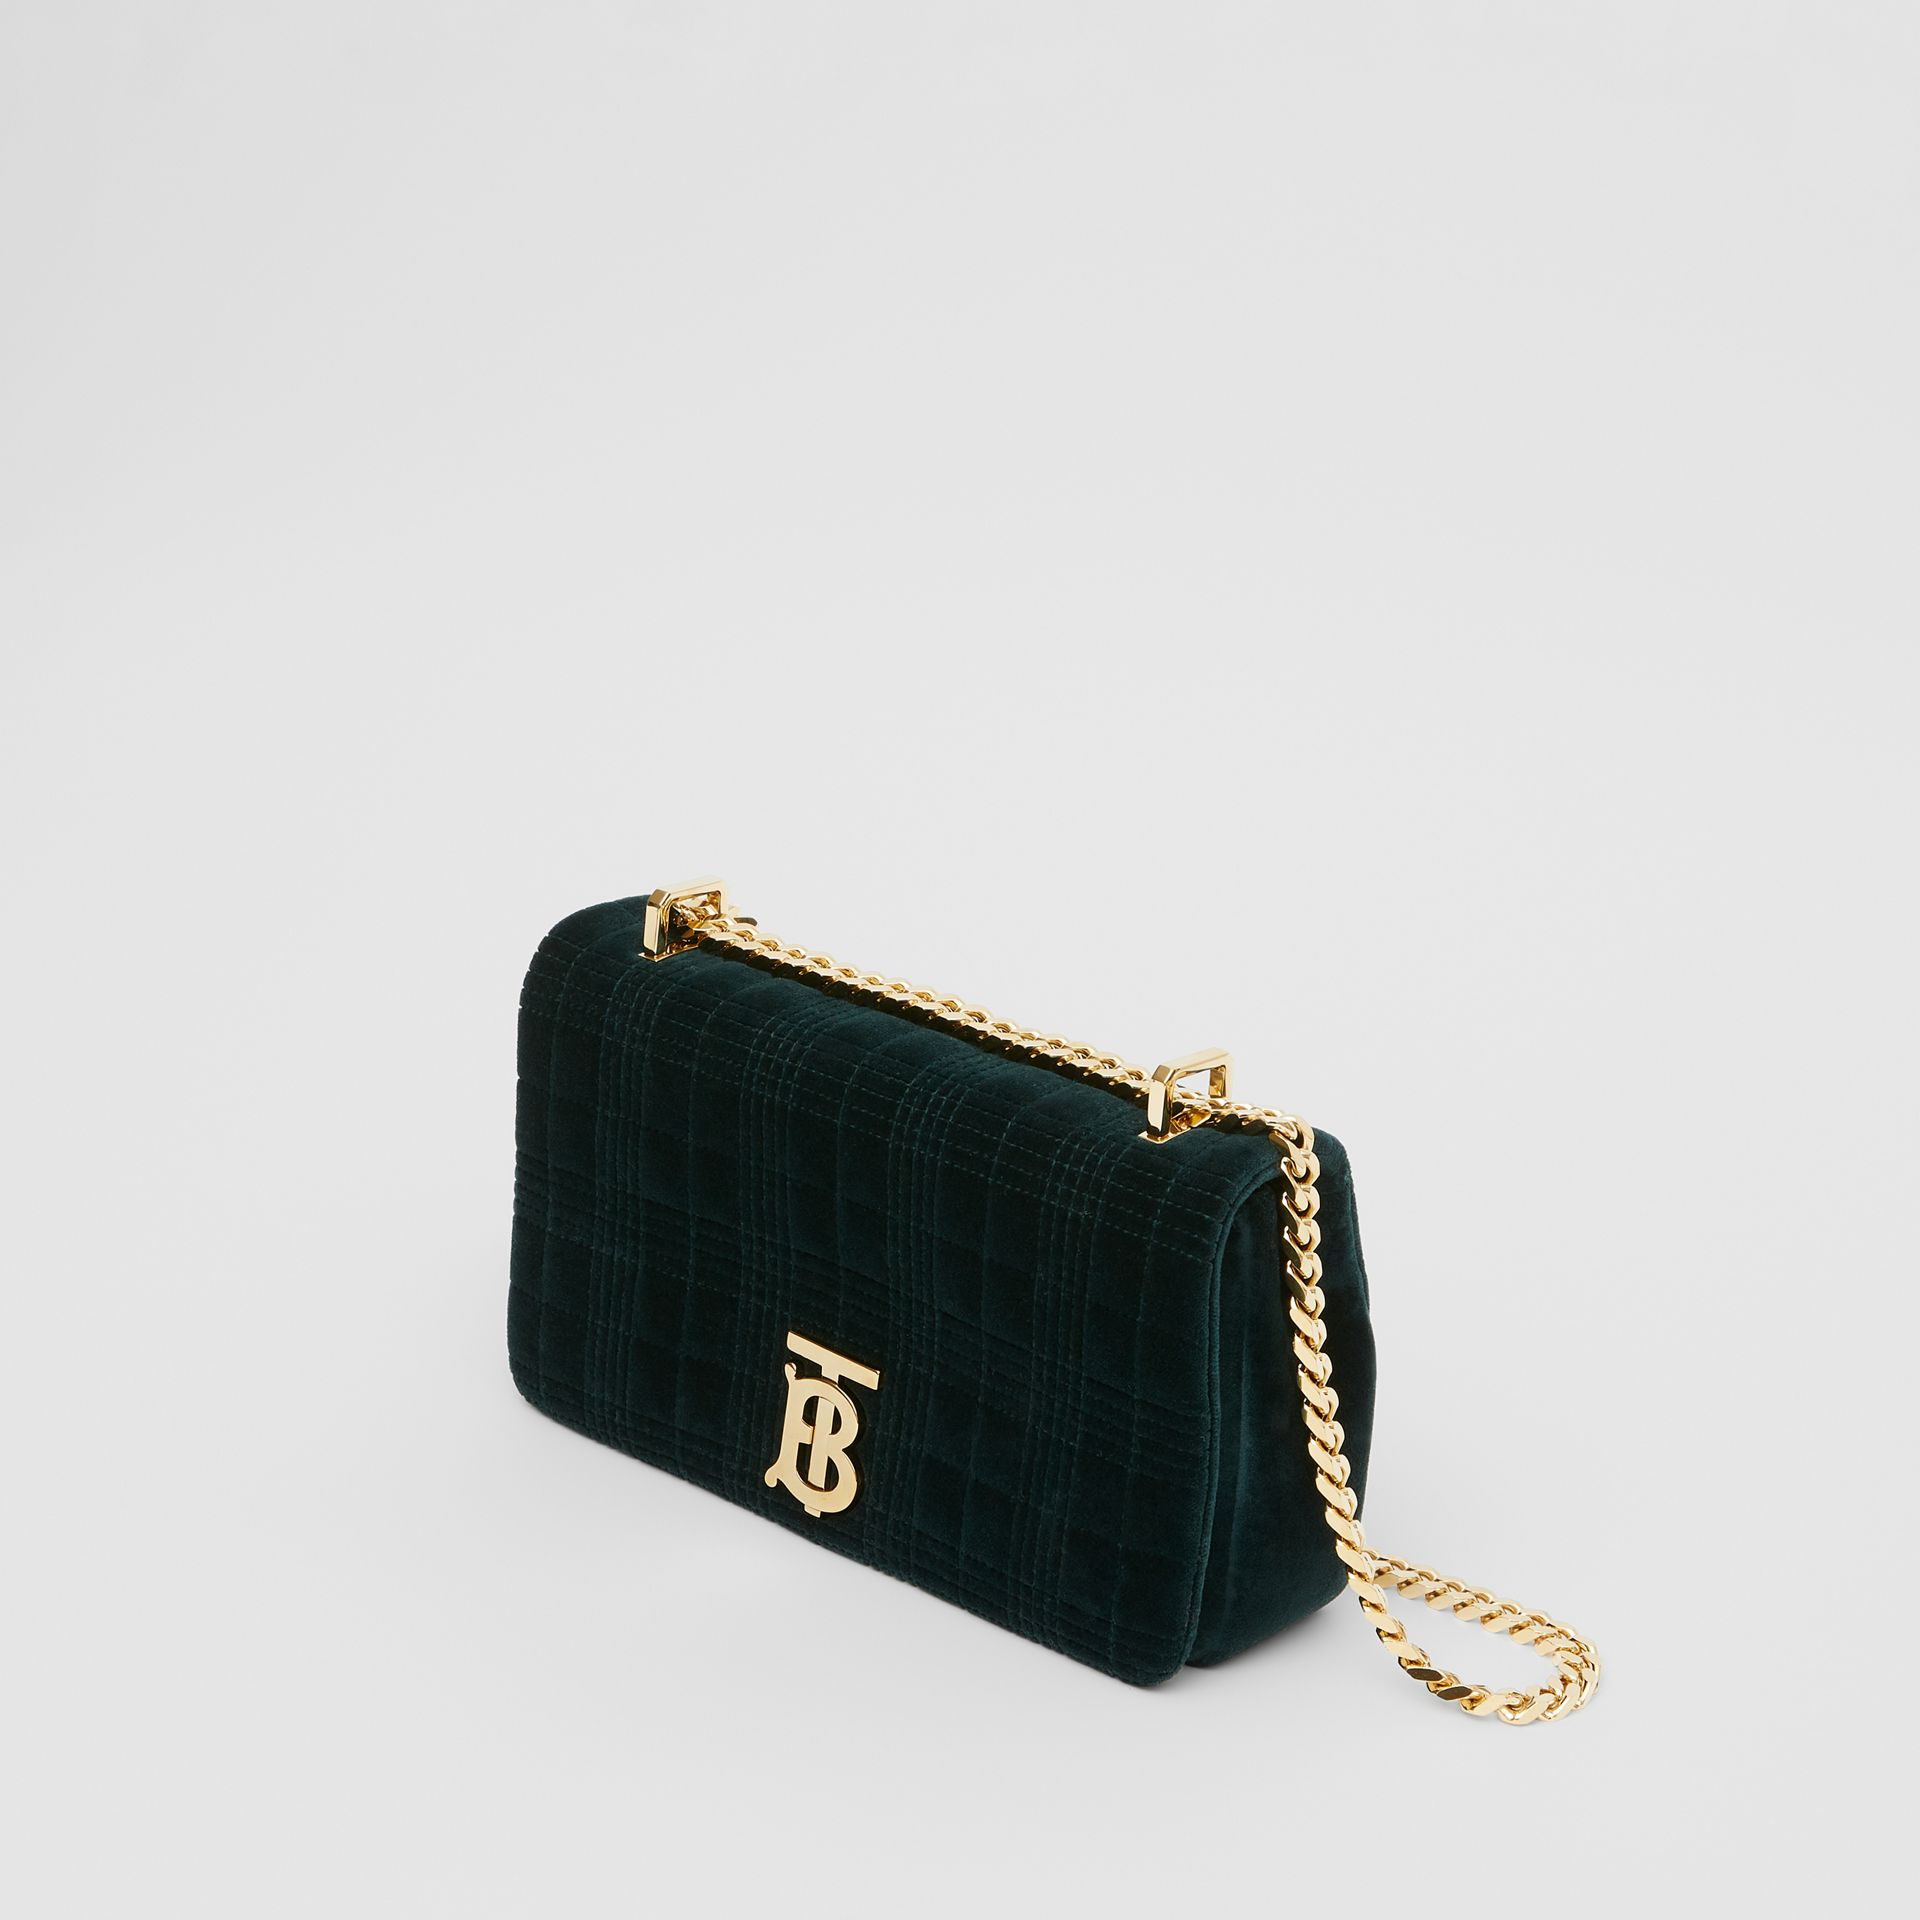 Small Quilted Velvet Lola Bag in Dark Green - Women | Burberry - gallery image 3